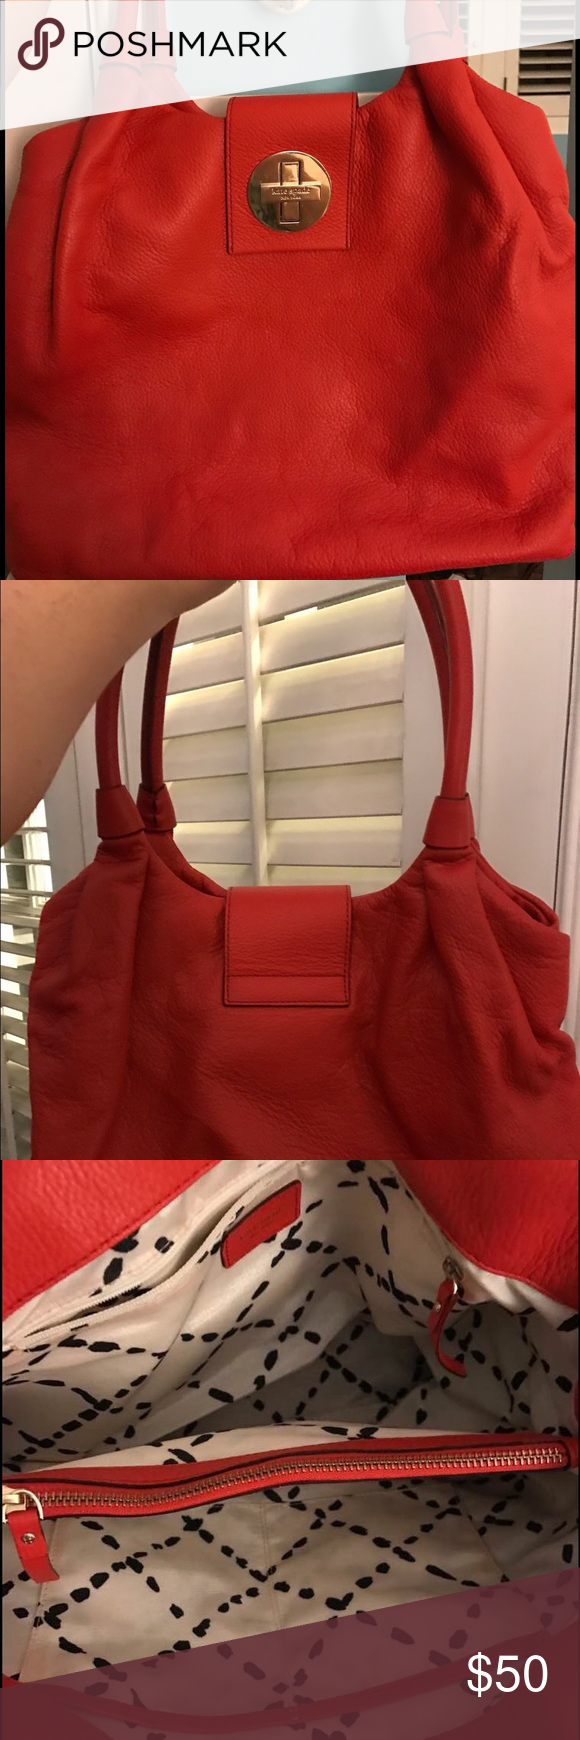 Kate Spade red leather shoulder bag It's a big bag! There are two main areas in the bag with a compartment the full length of the bag in the middle. It's been gently used and is still in great condition. kate spade Bags Shoulder Bags